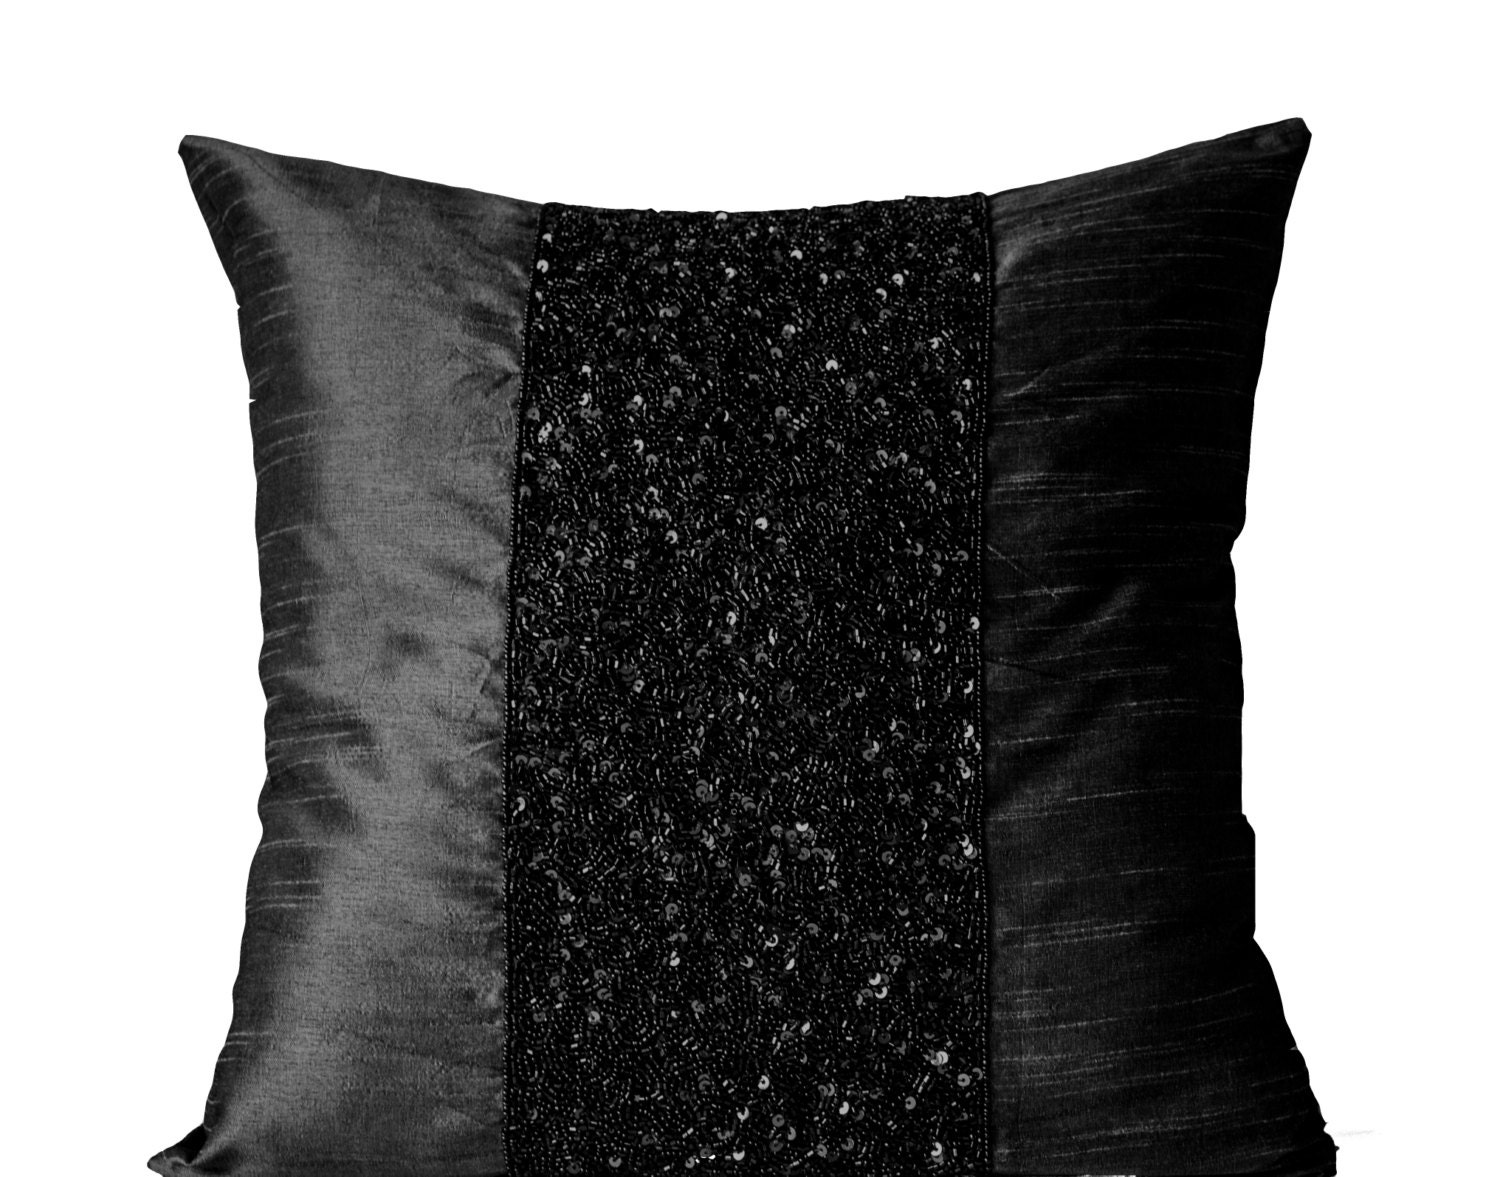 Black Beaded Pillows Black Silk Pillows  Black Metallic Sparkle Pillow  Black Beads Embroidered